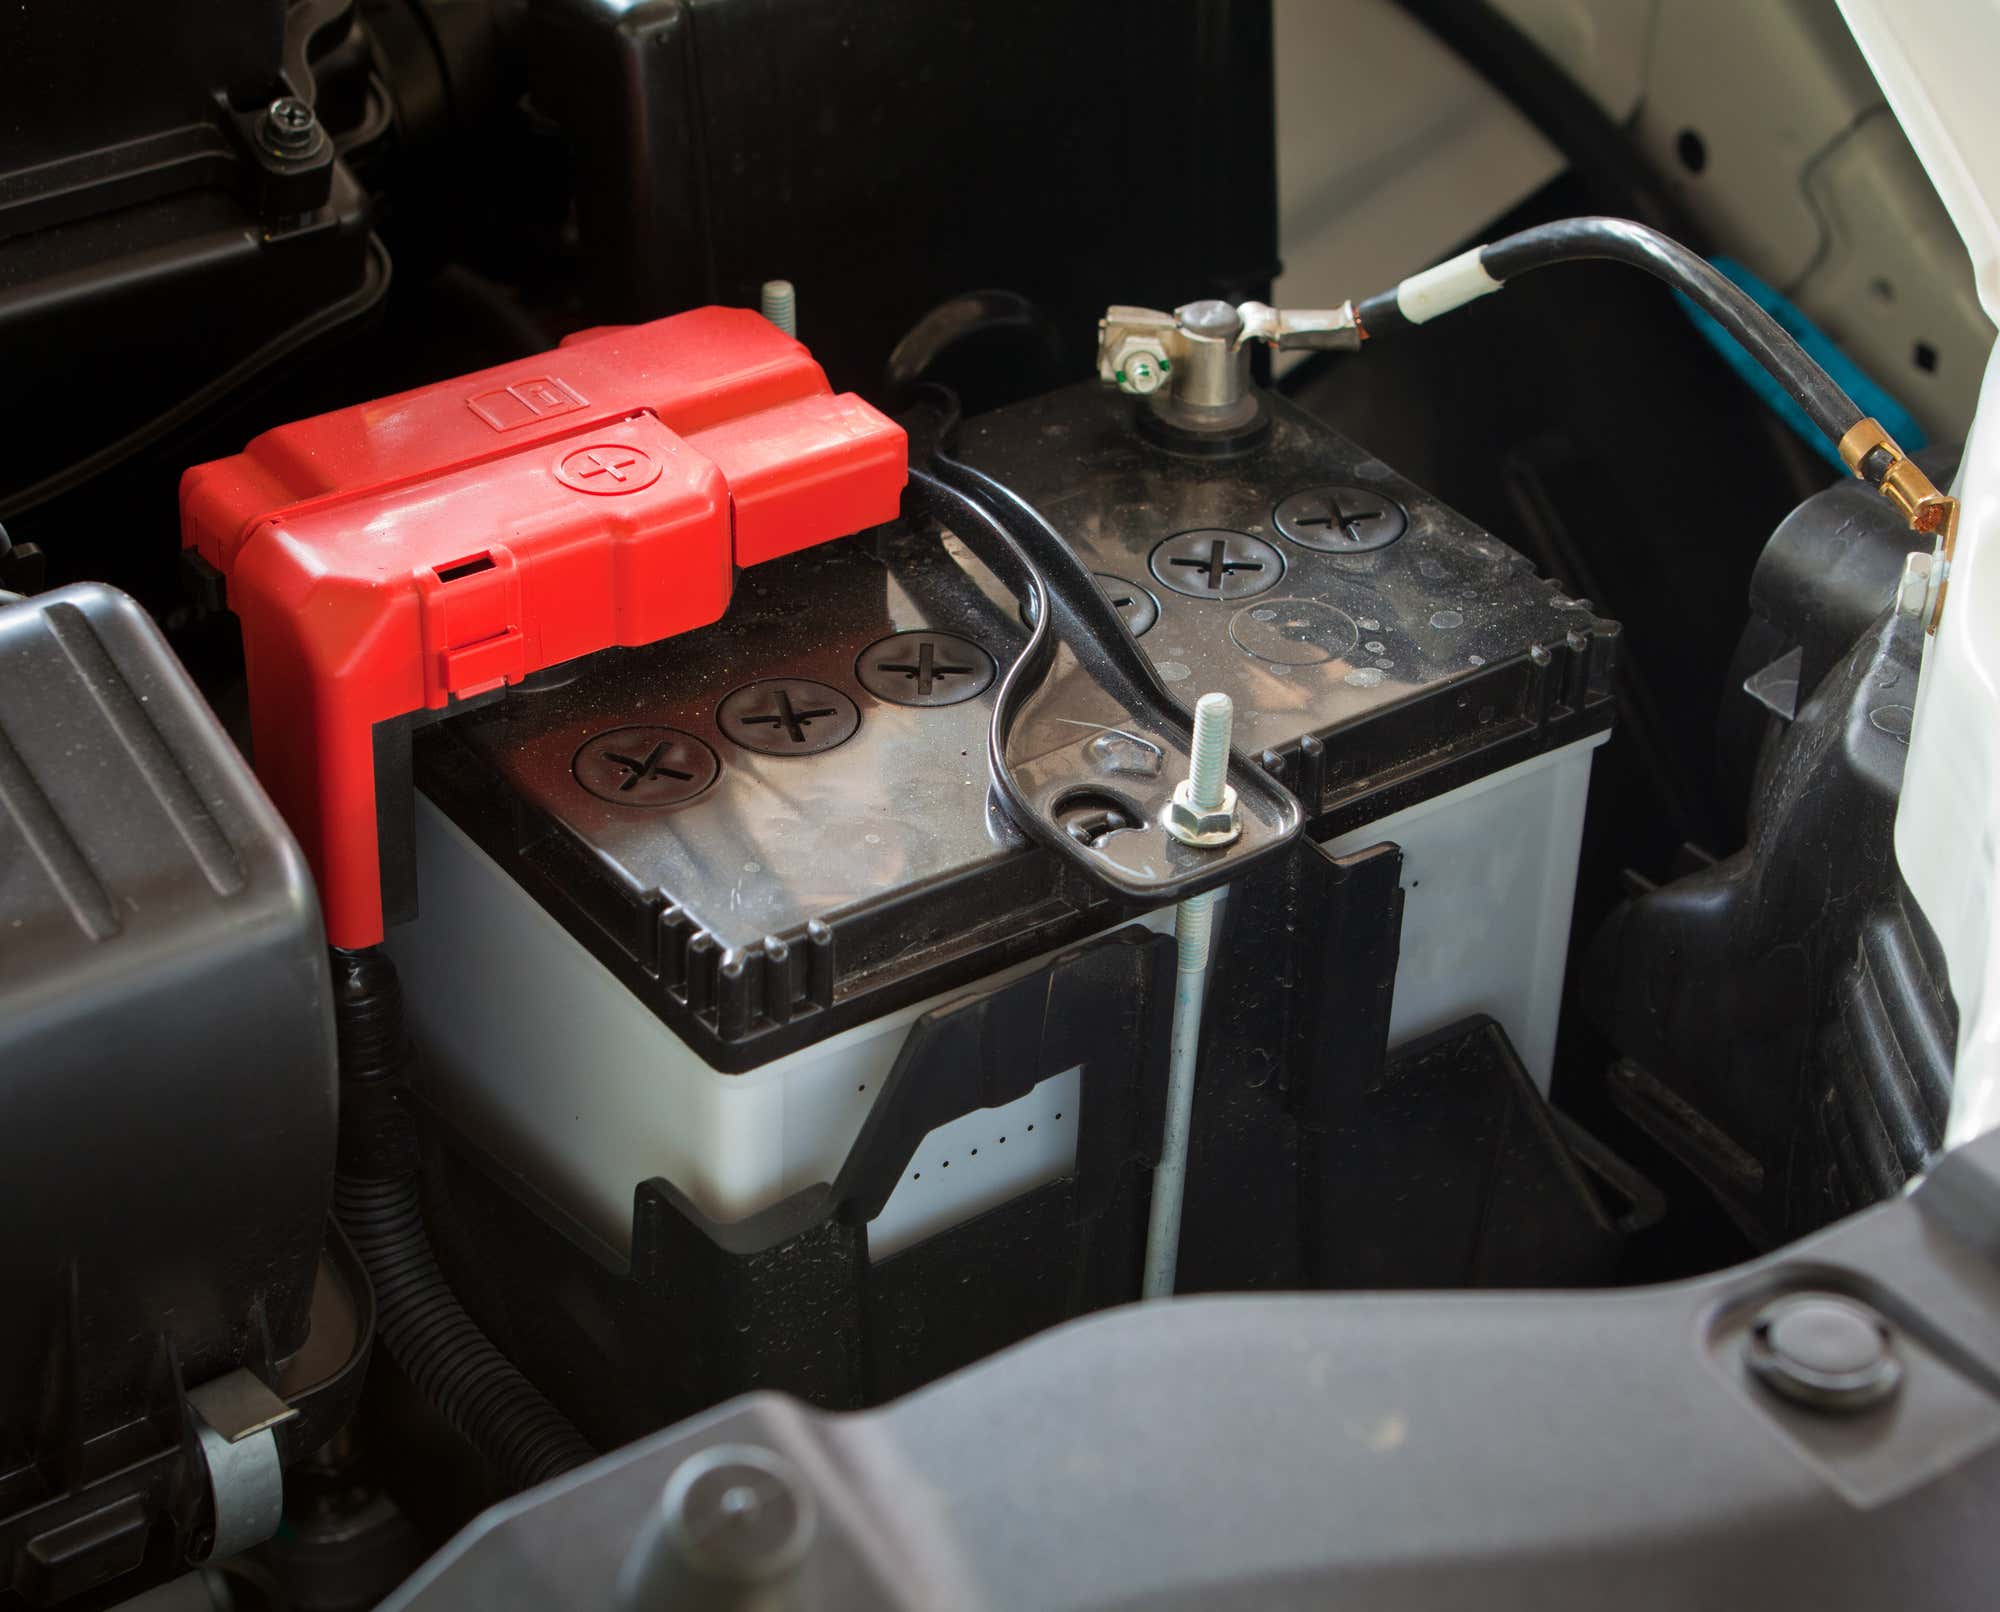 A car battery is shown with a red positive terminal cap.